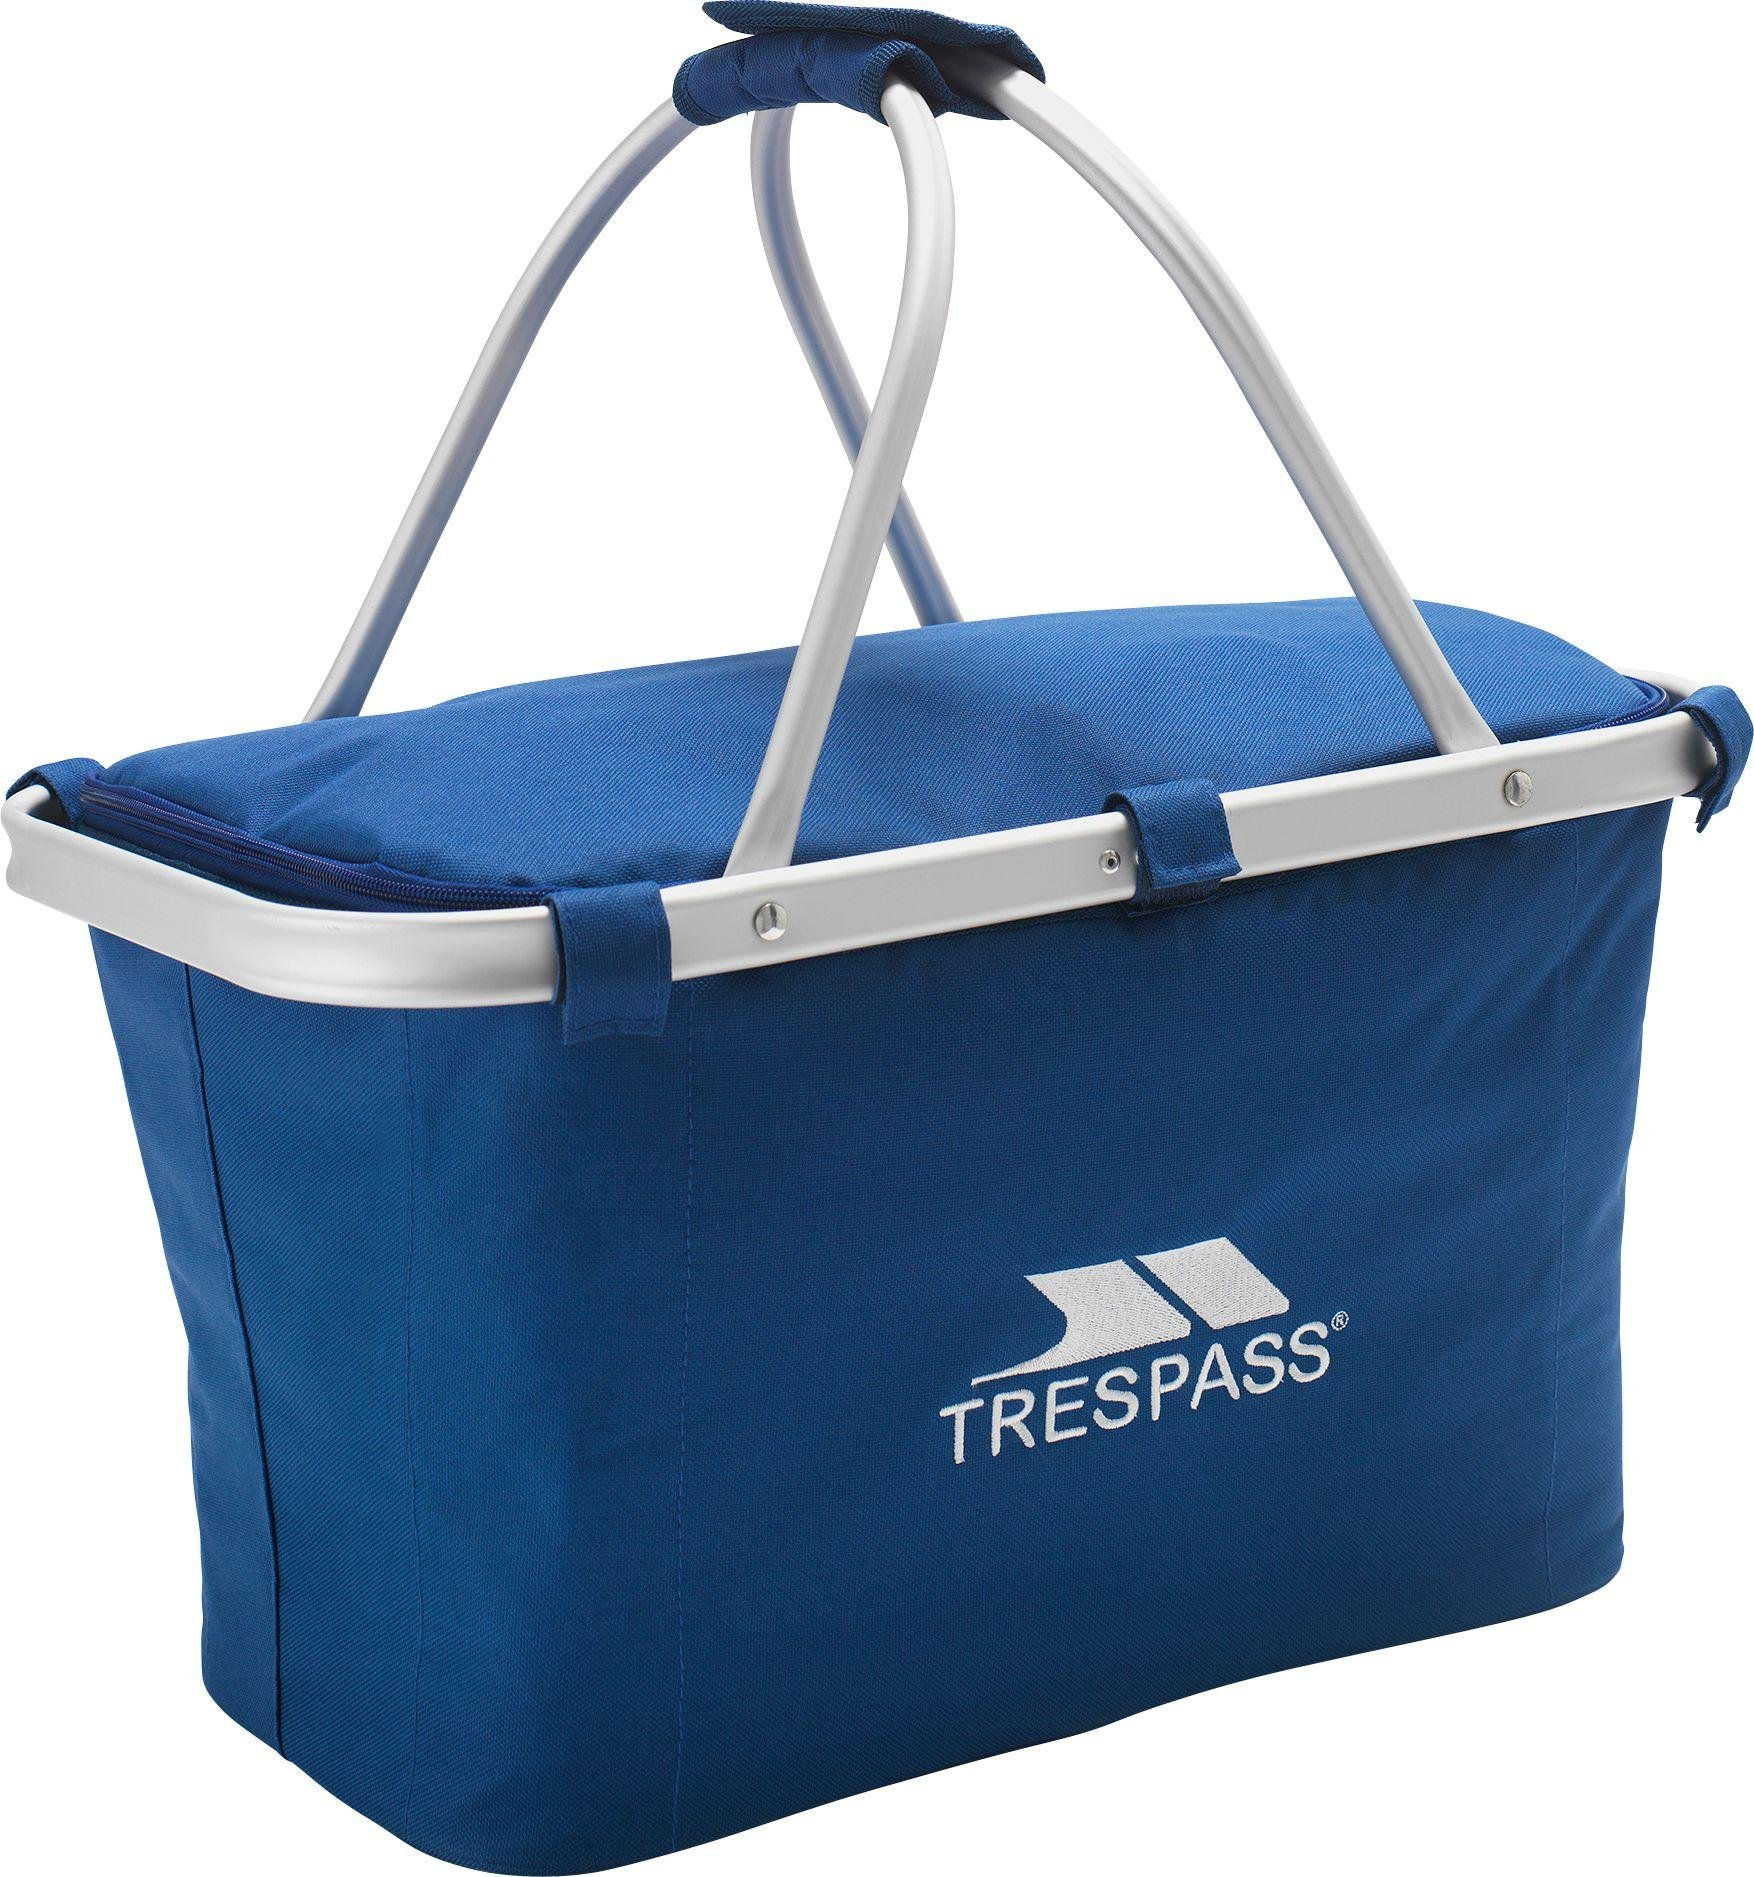 Trespass - Basket Style Coolbag from Trespass